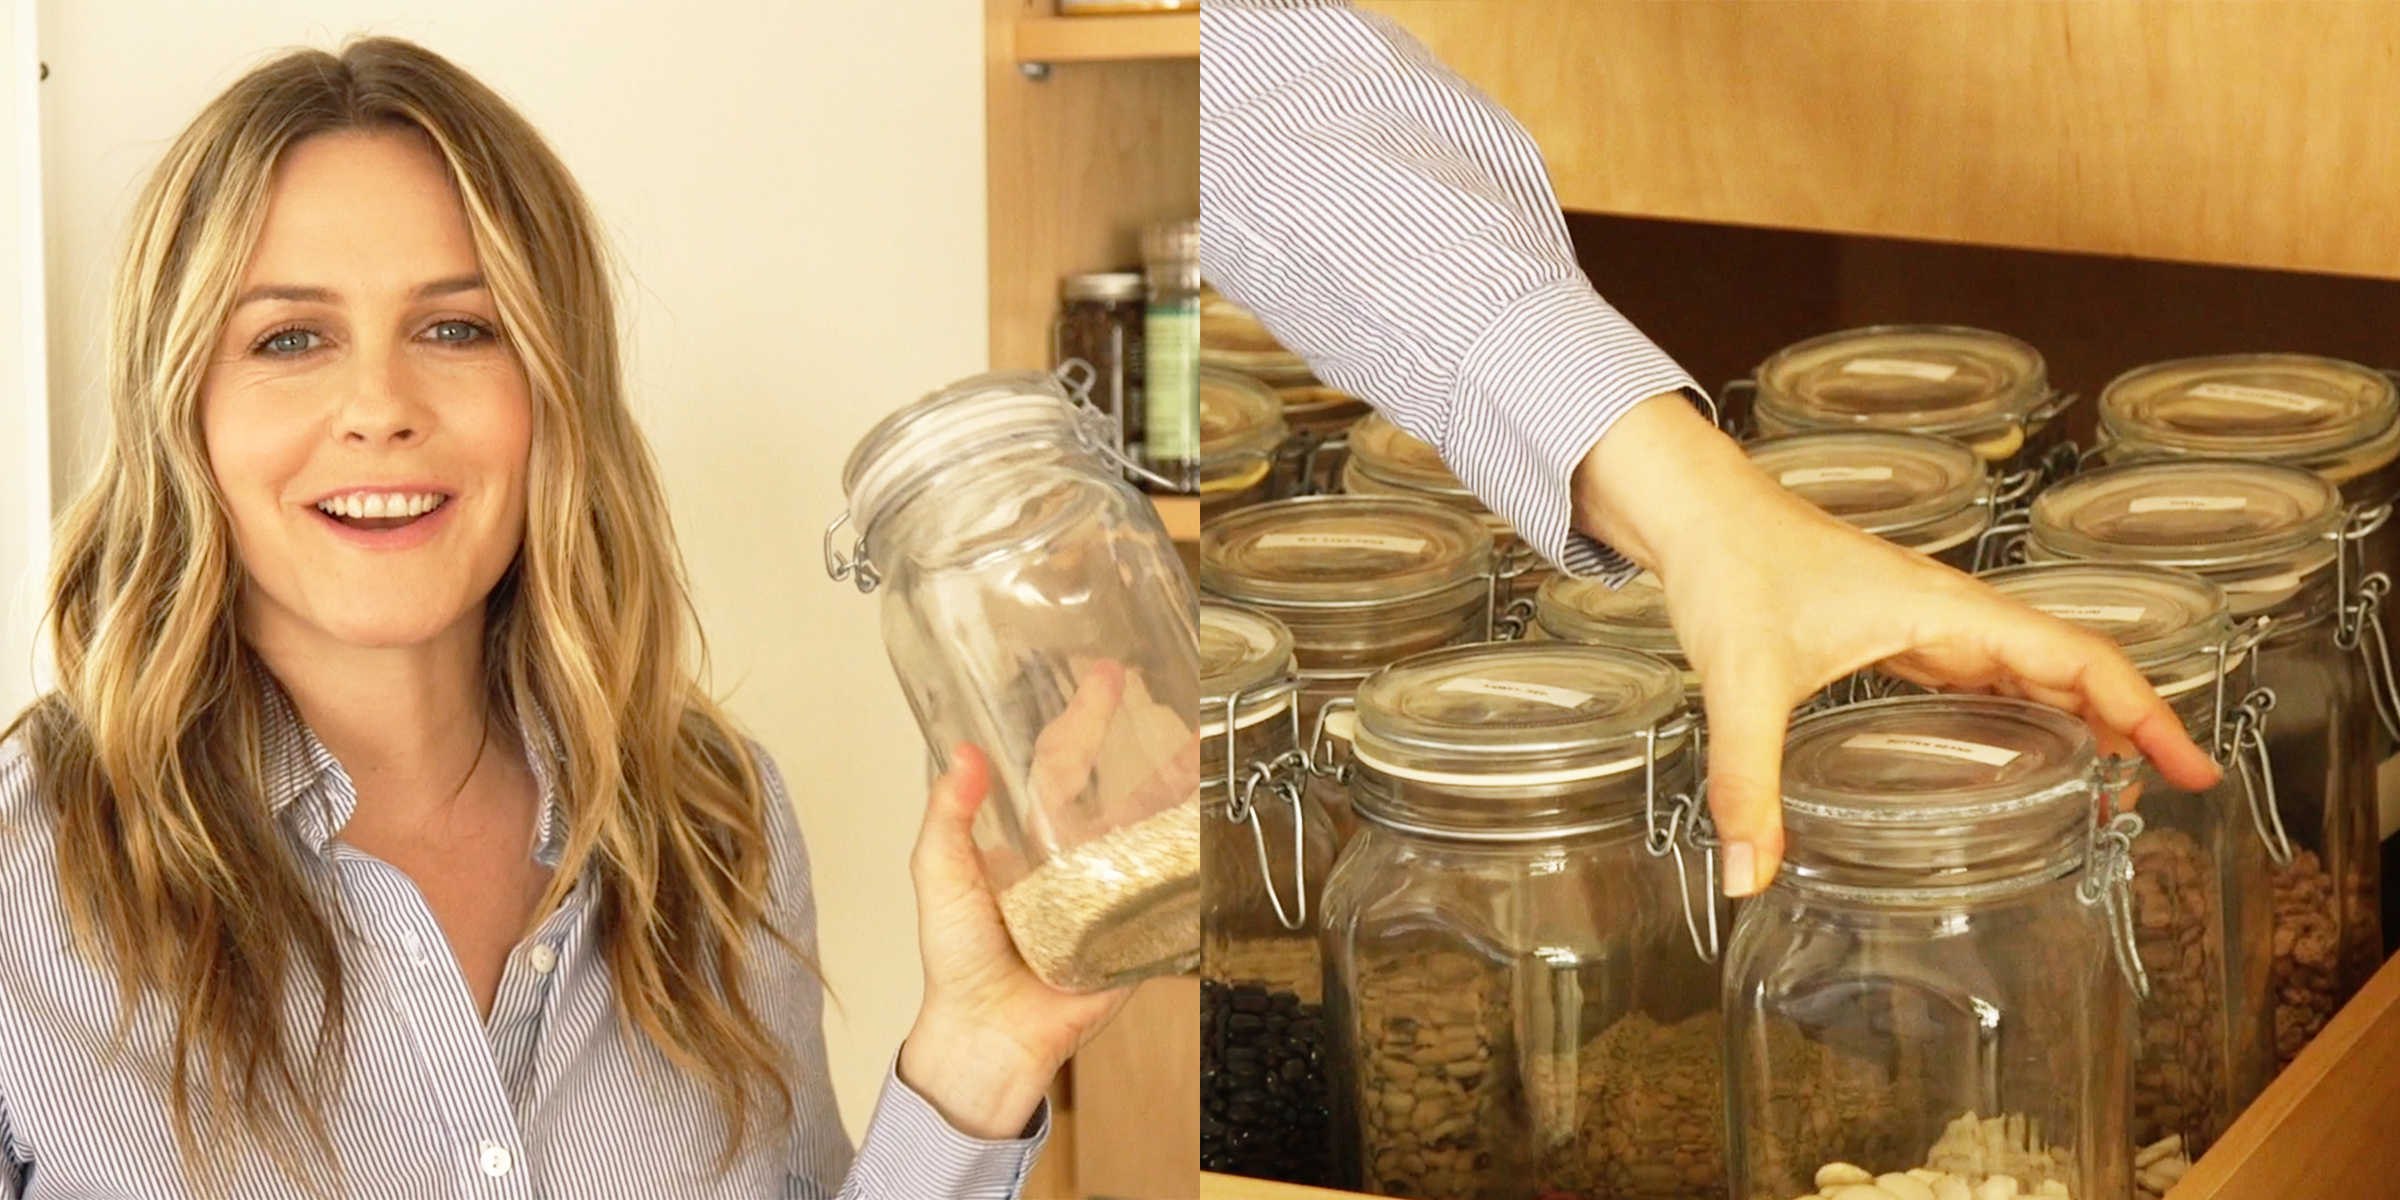 Peek inside Alicia Silverstone's perfectly organized pantry and gorgeous kitchen